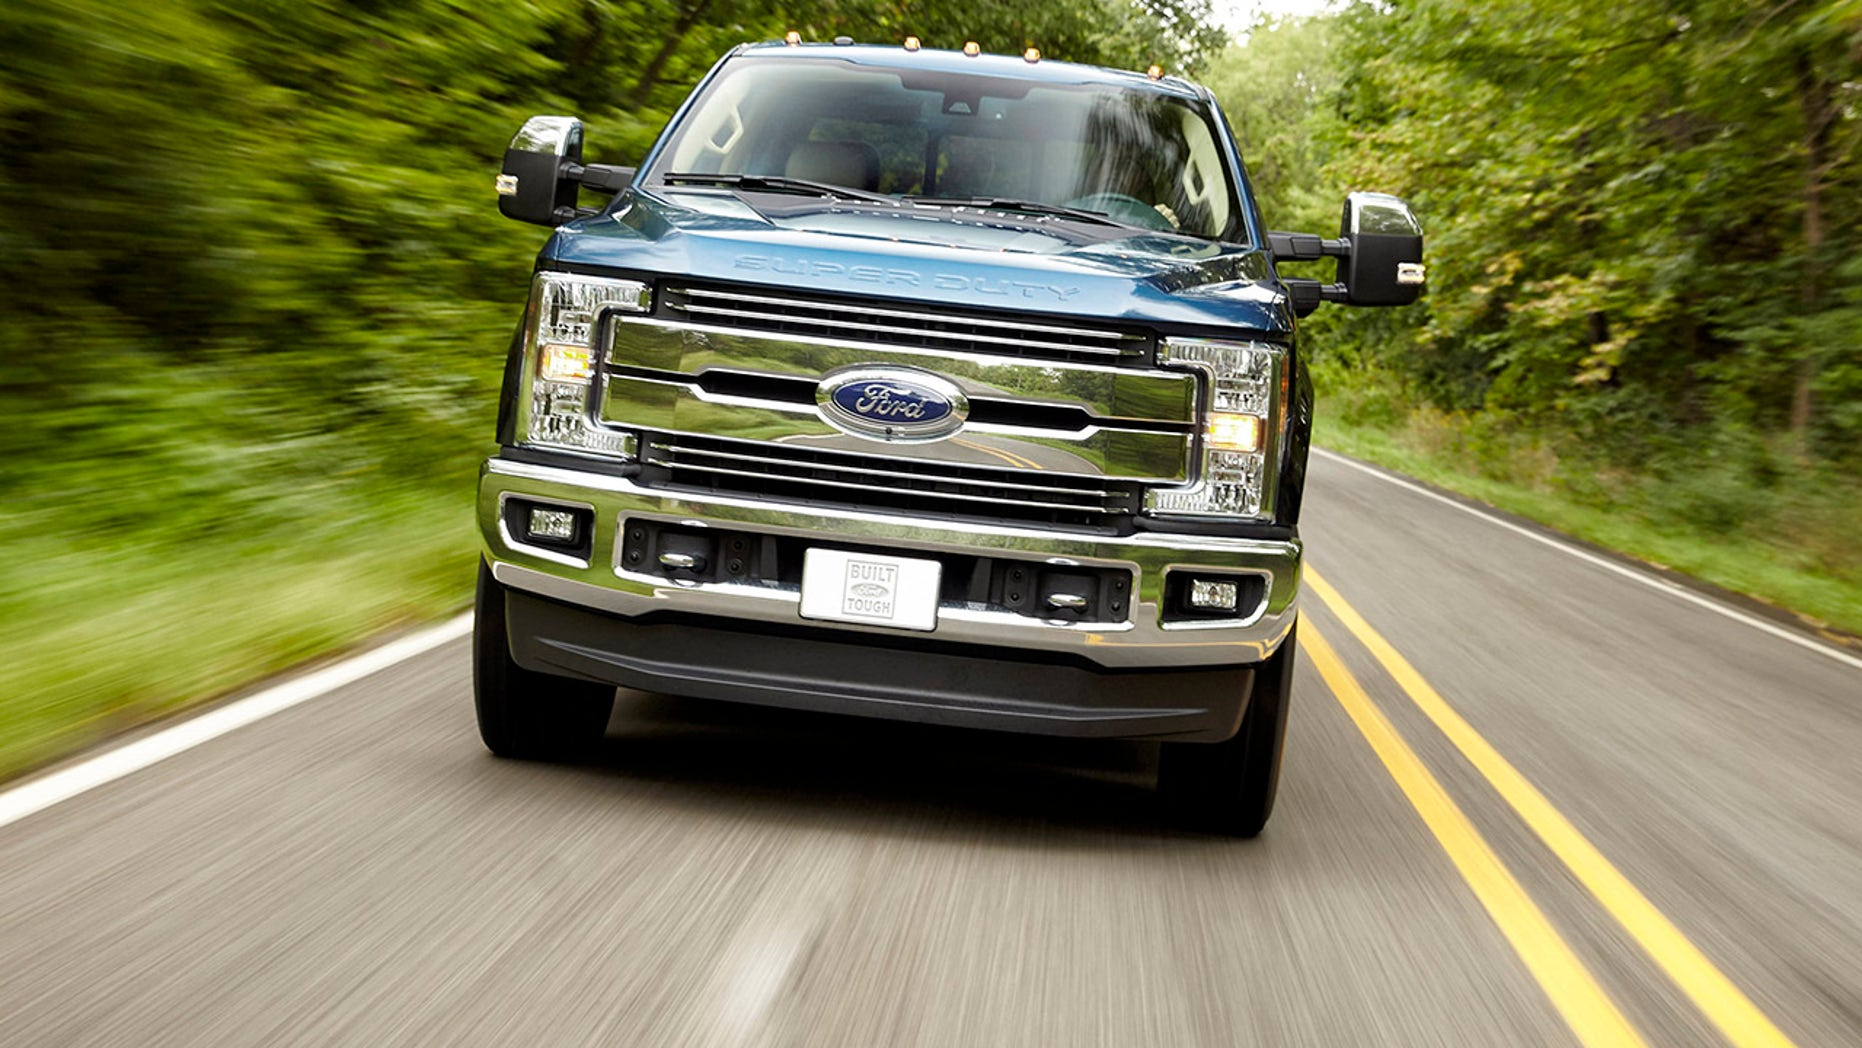 Ford recalling more than 800000 trucks due to safety issue